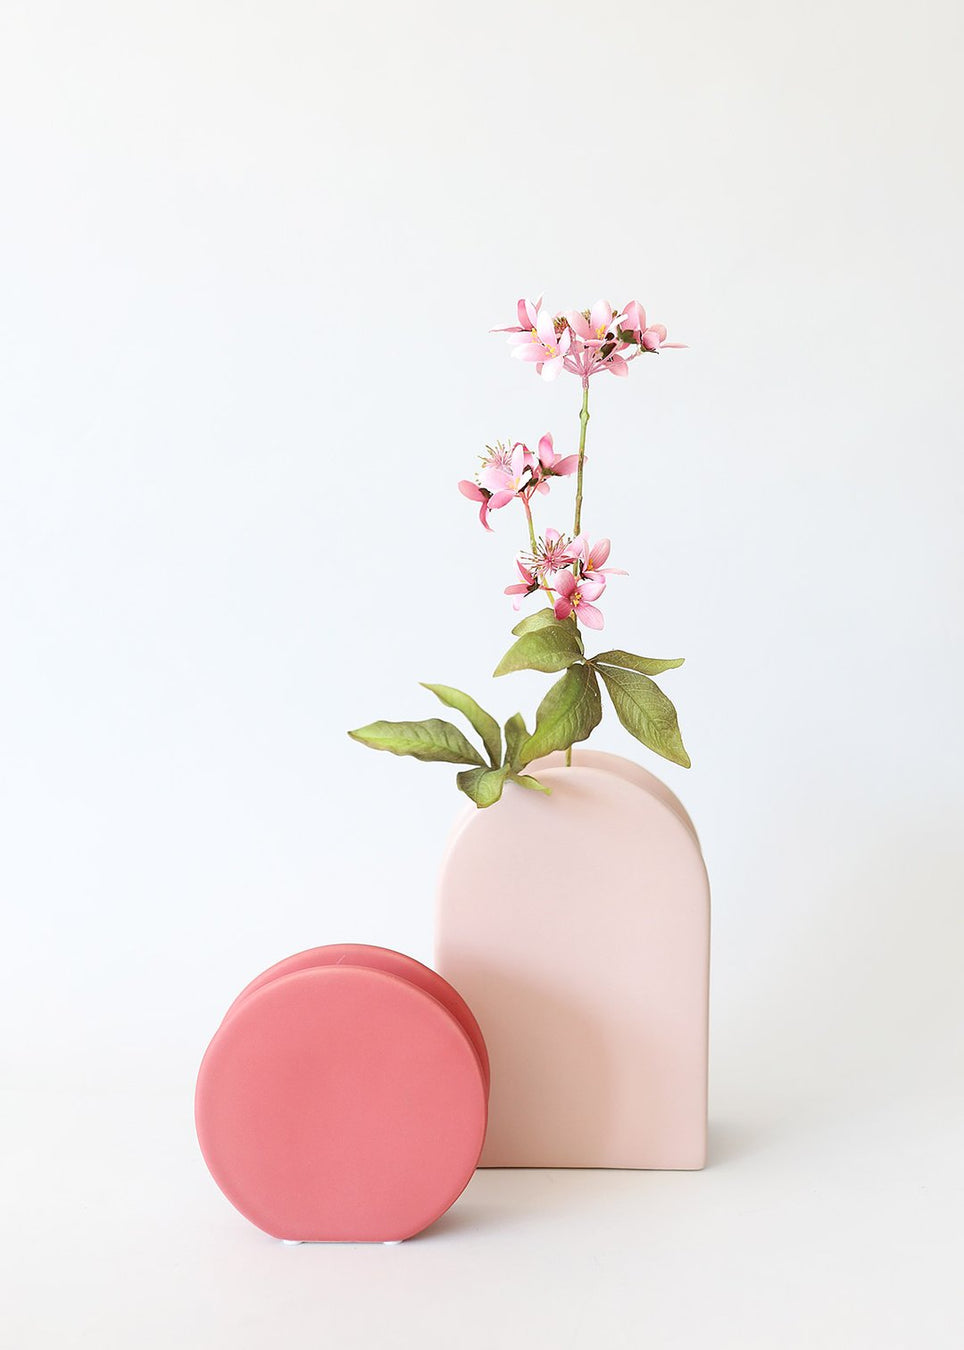 Colorful Ceramic vases for home flower arrangements